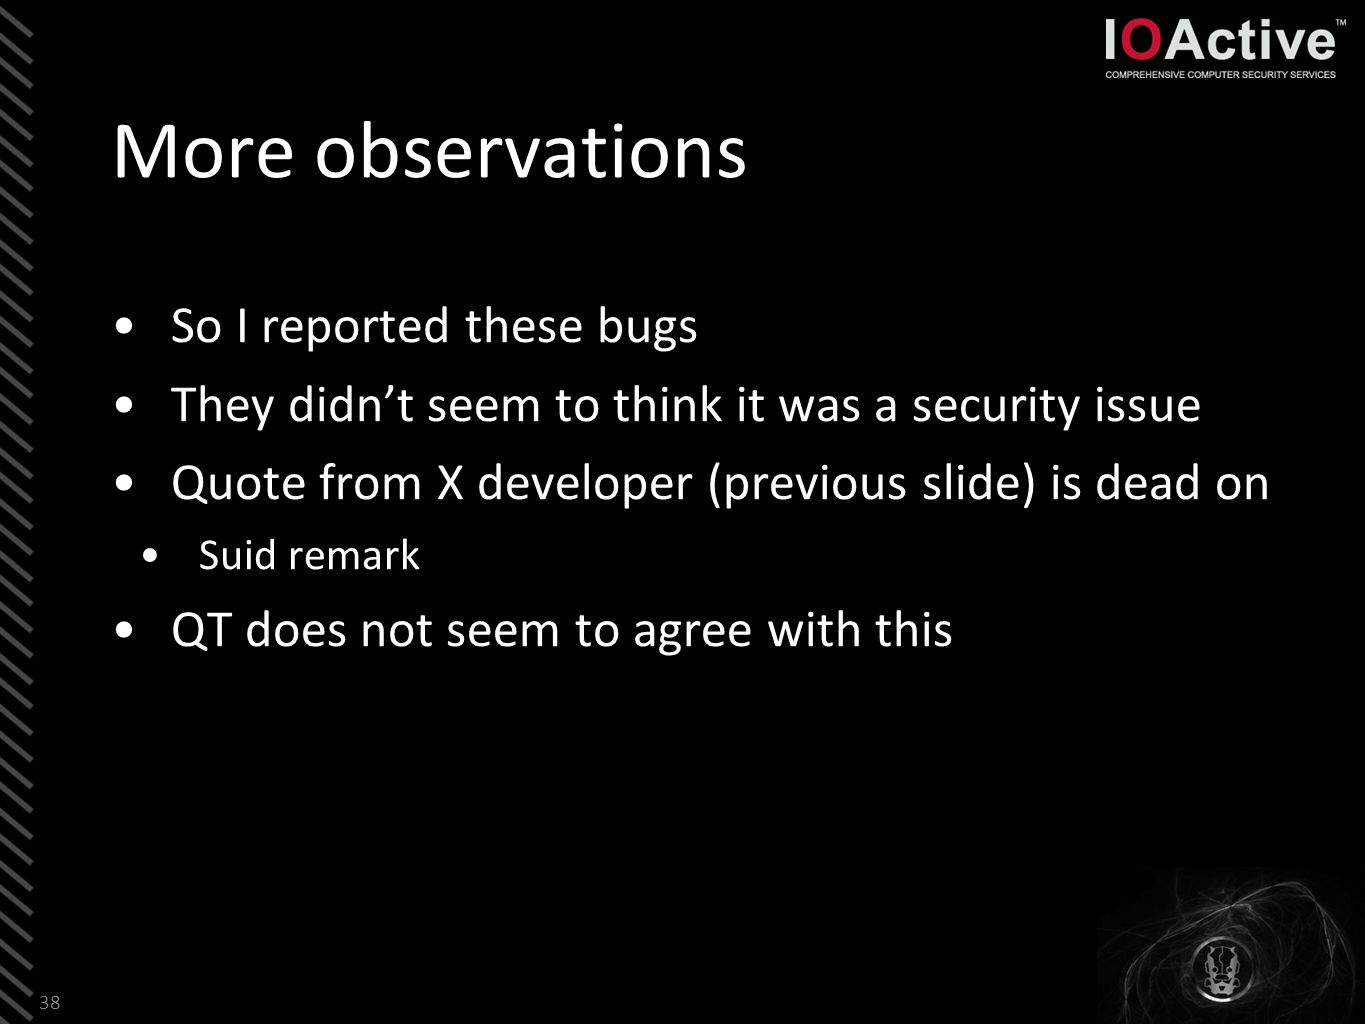 More observations So I reported these bugs They didn't seem to think it was a security issue Quote from X developer (previous slide) is dead on Suid remark QT does not seem to agree with this 38